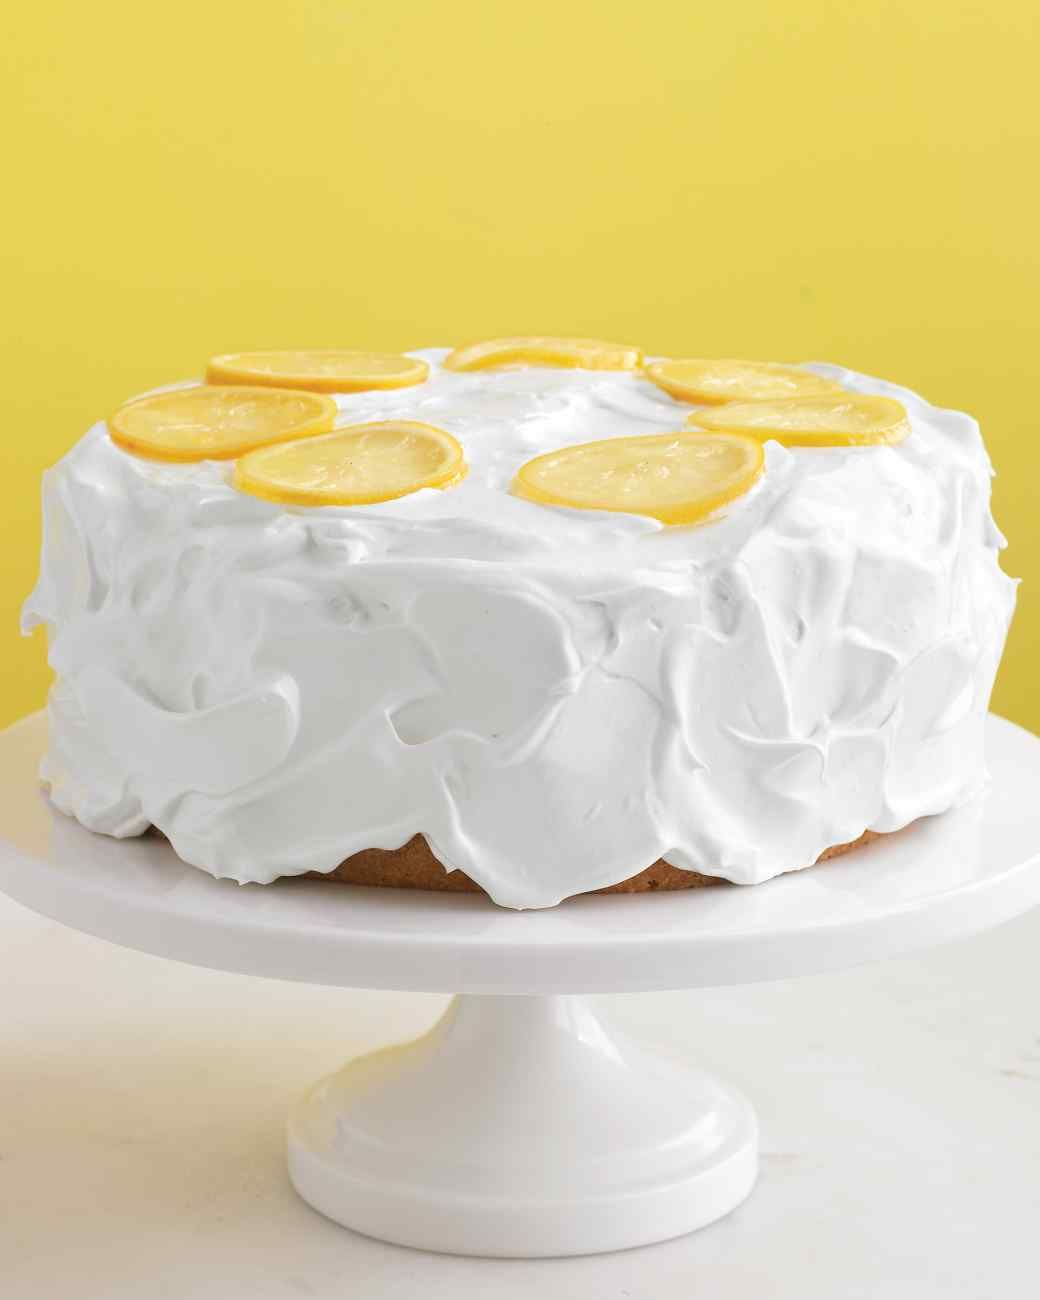 Easter Dessert Recipes | Martha Stewart Living - Basic vanilla cake gets a sunny makeover with the addition of lemon syrup, whipped frosting, and lemon slices.